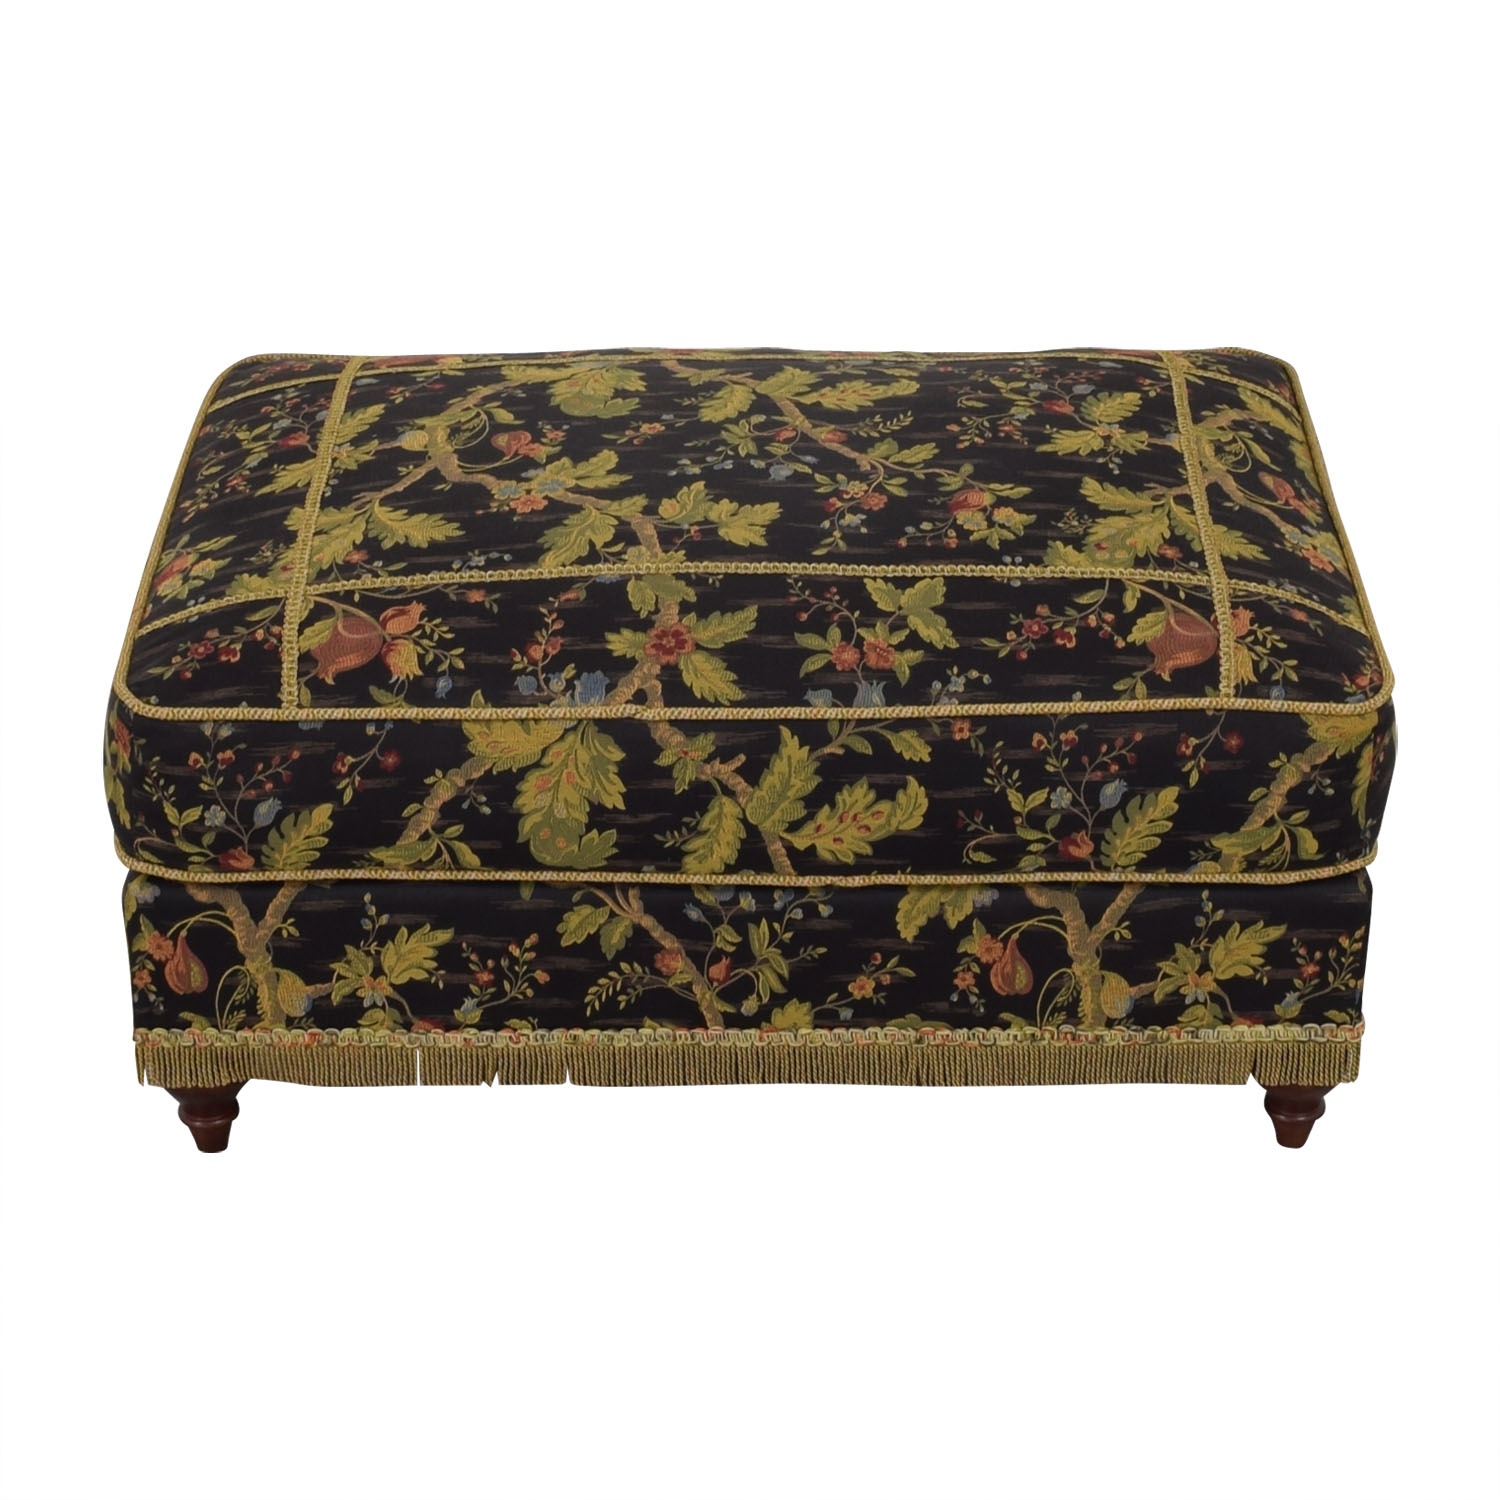 Domain Home Domain Home Emily II Victorian-Style Ottoman used